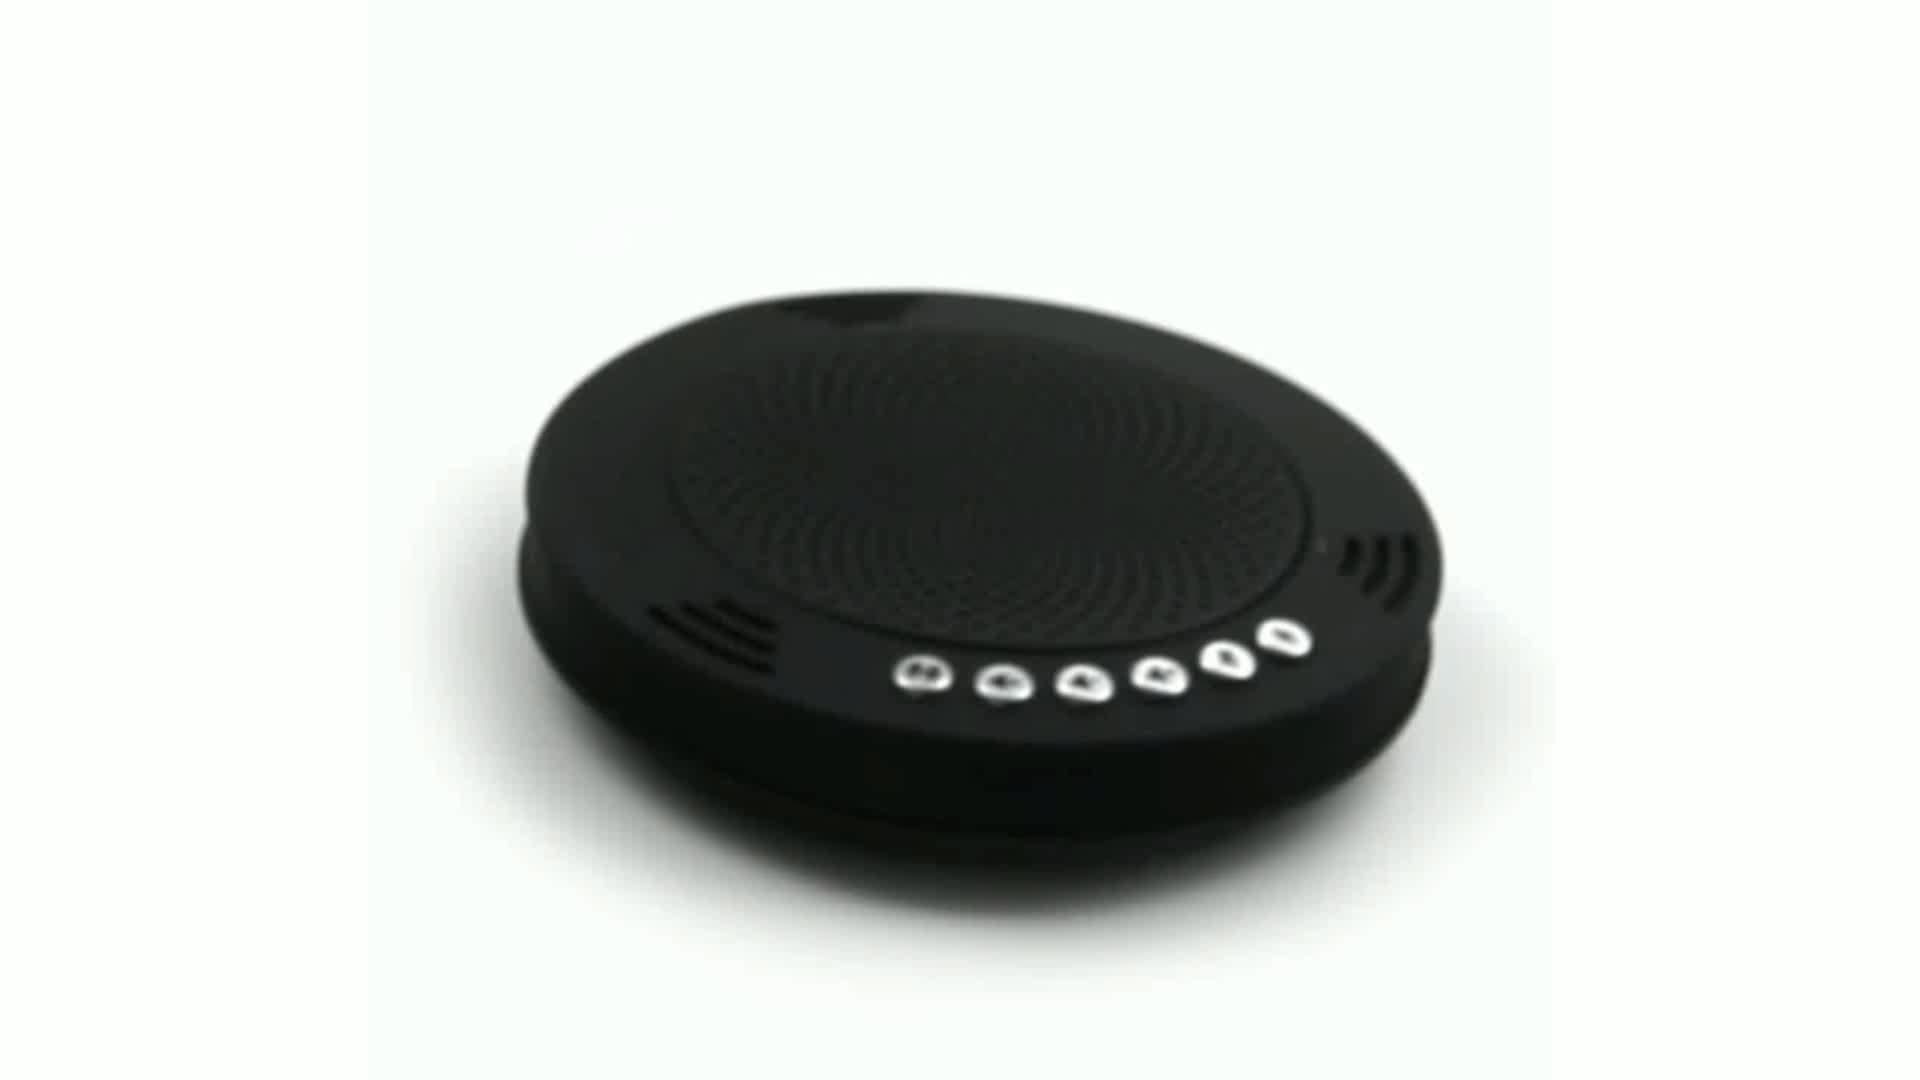 TEVO-A100 hot sale USB conference room phone speaker speakerphone mic conference room speakers